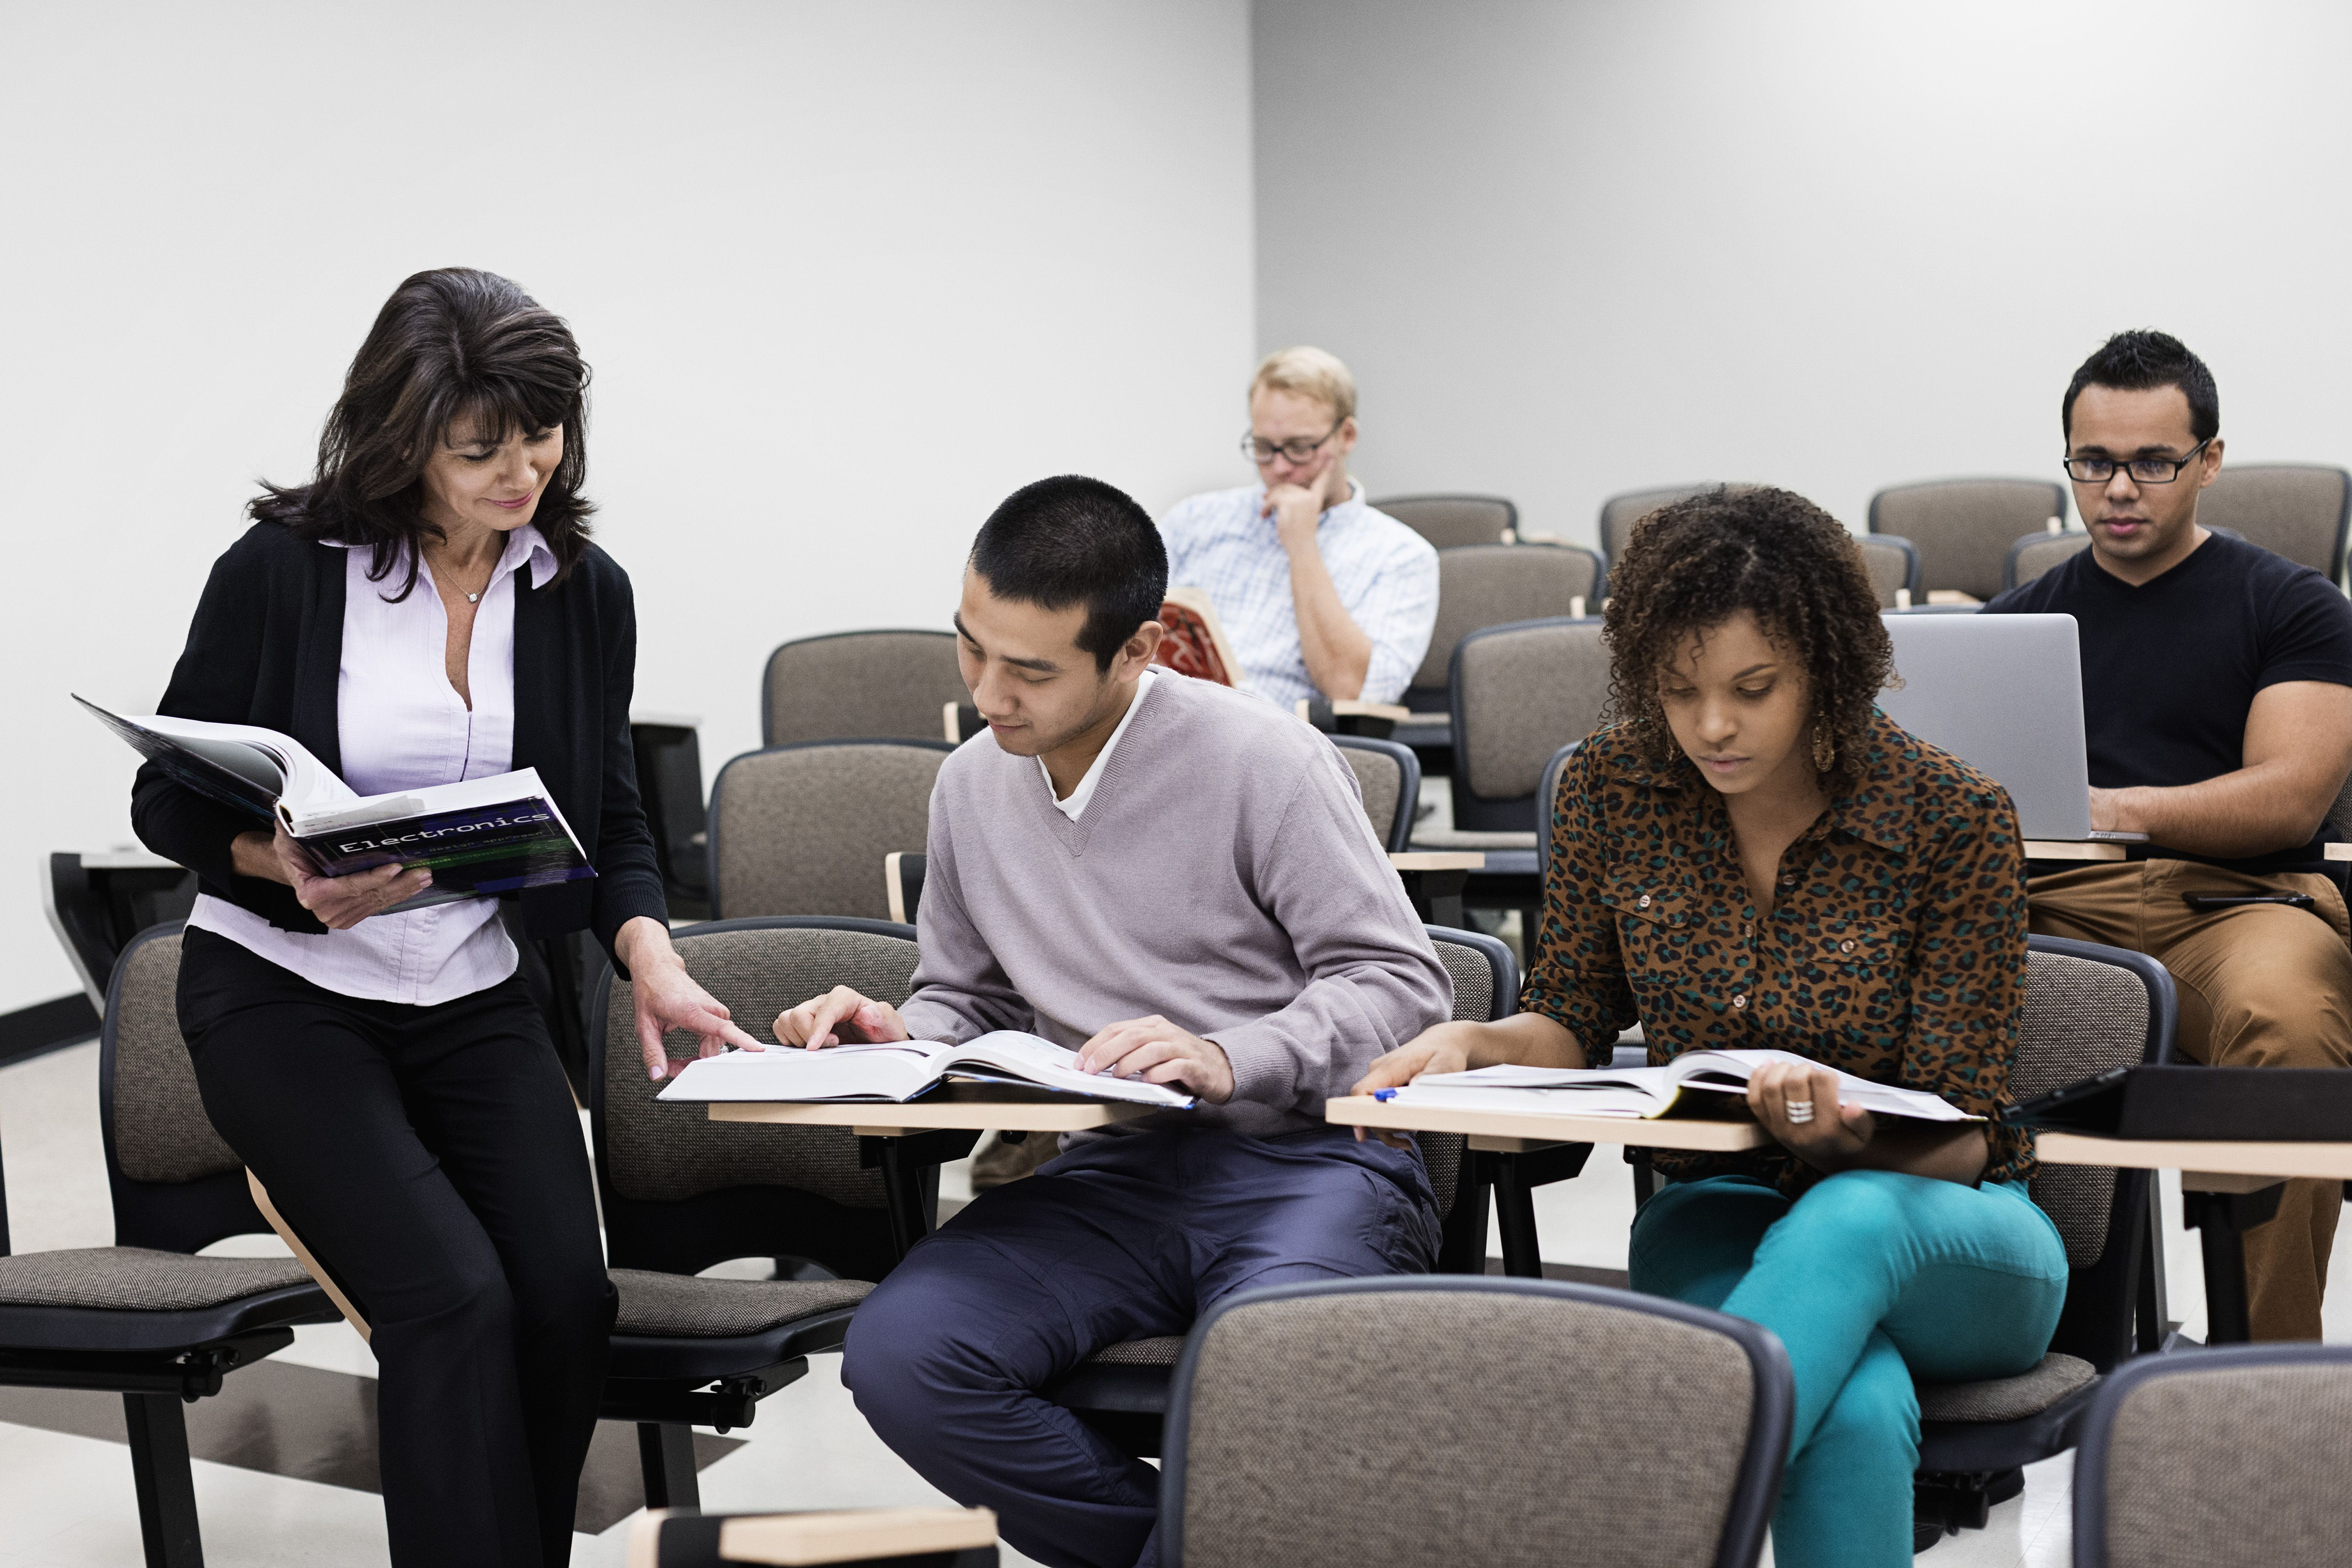 Social Work Students in Classroom